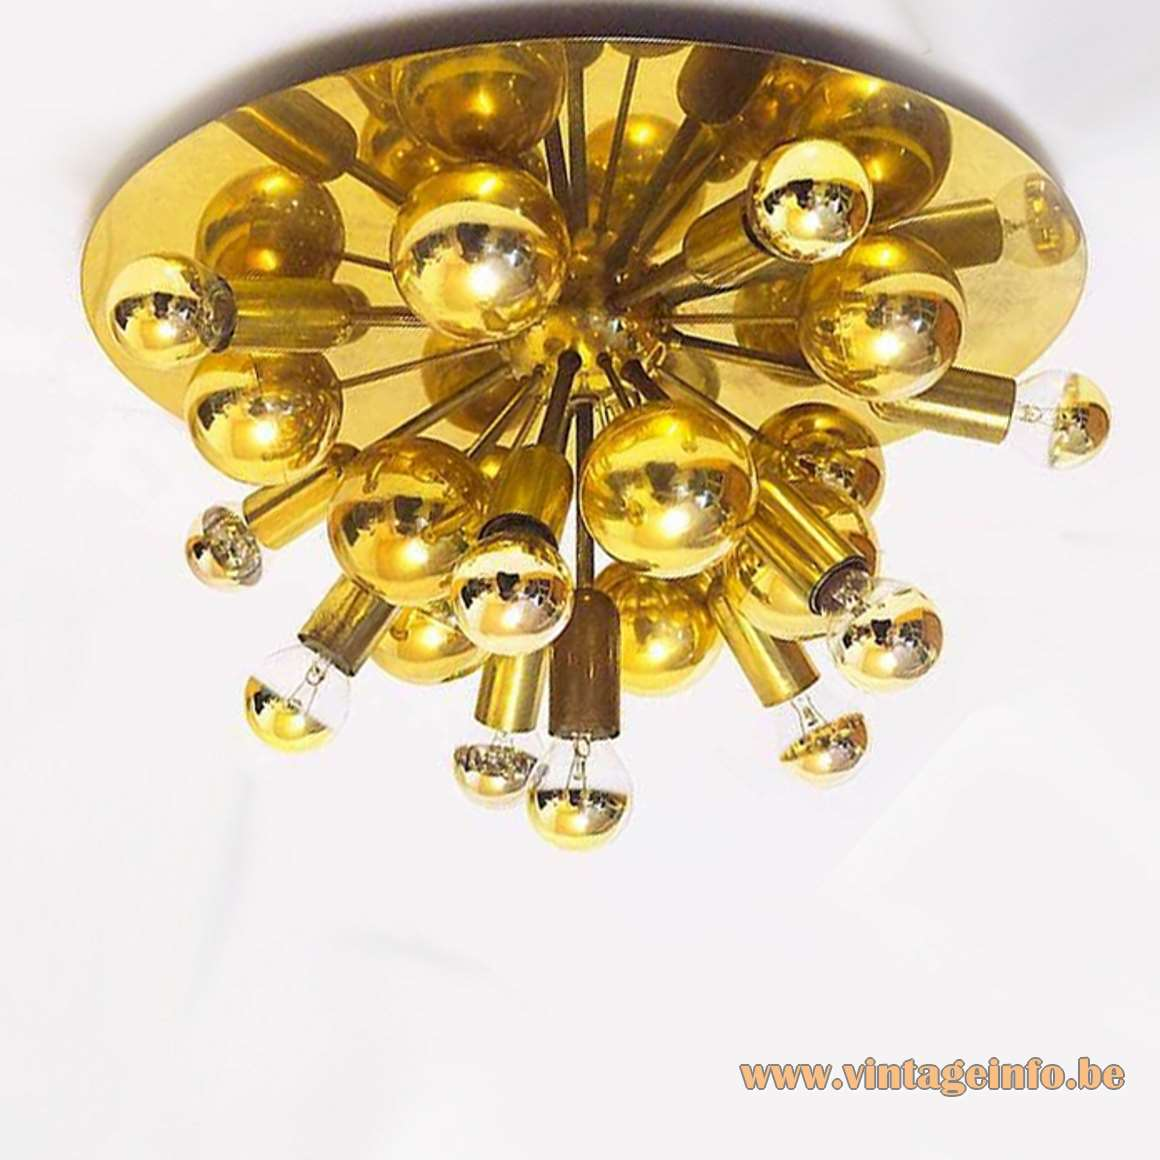 Gebrüder Cosack Brass Sputnik Flush Mount 1960s 1970s Germany round ceiling lamp MCM